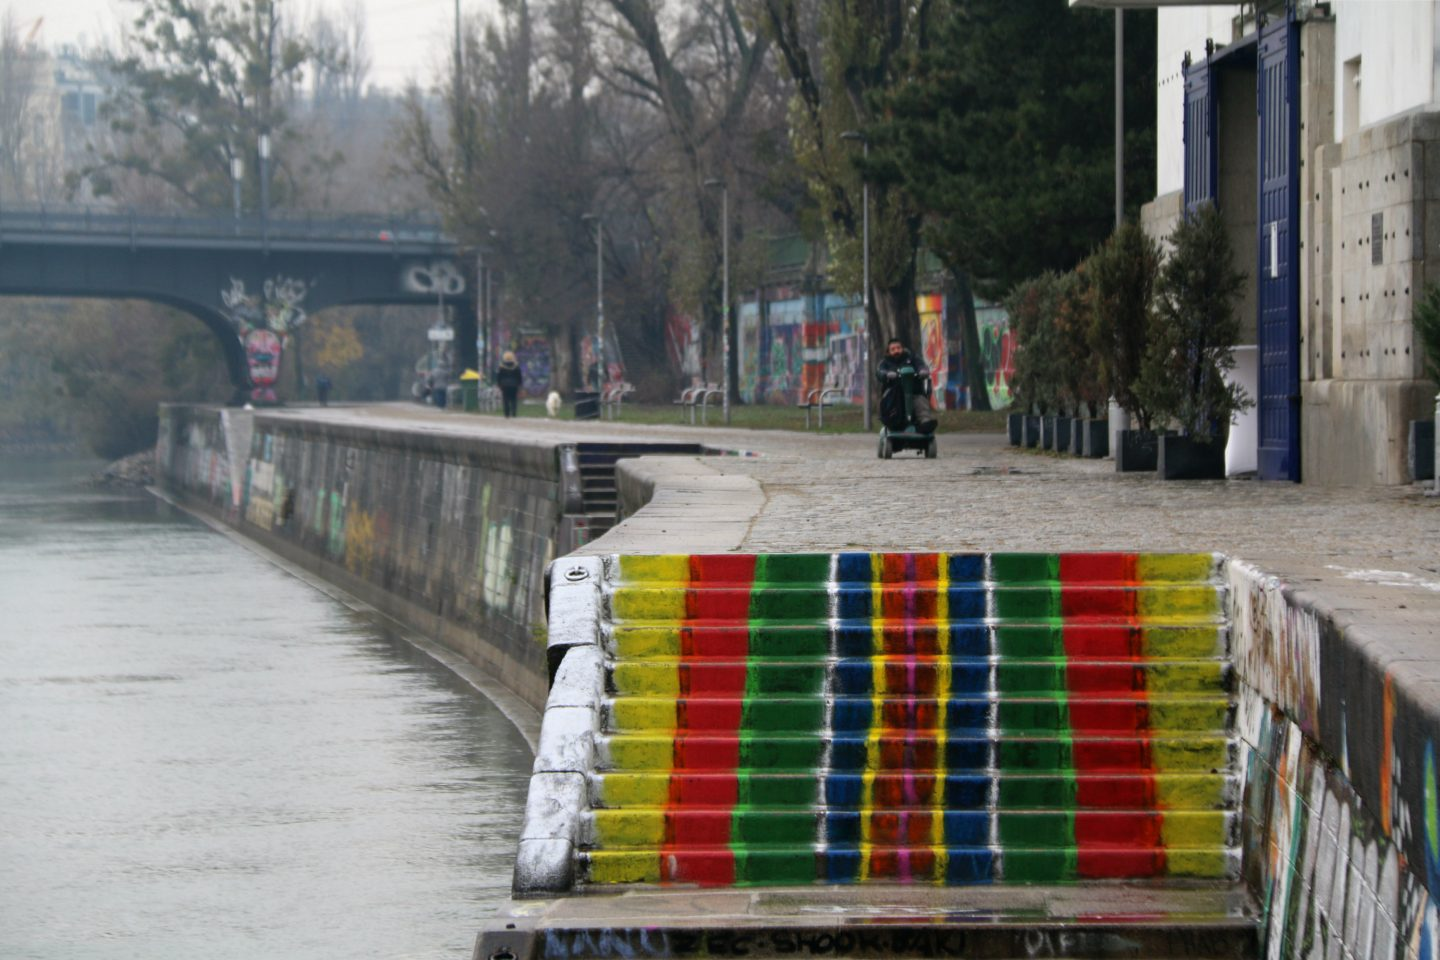 Vienna street art by the canal 22